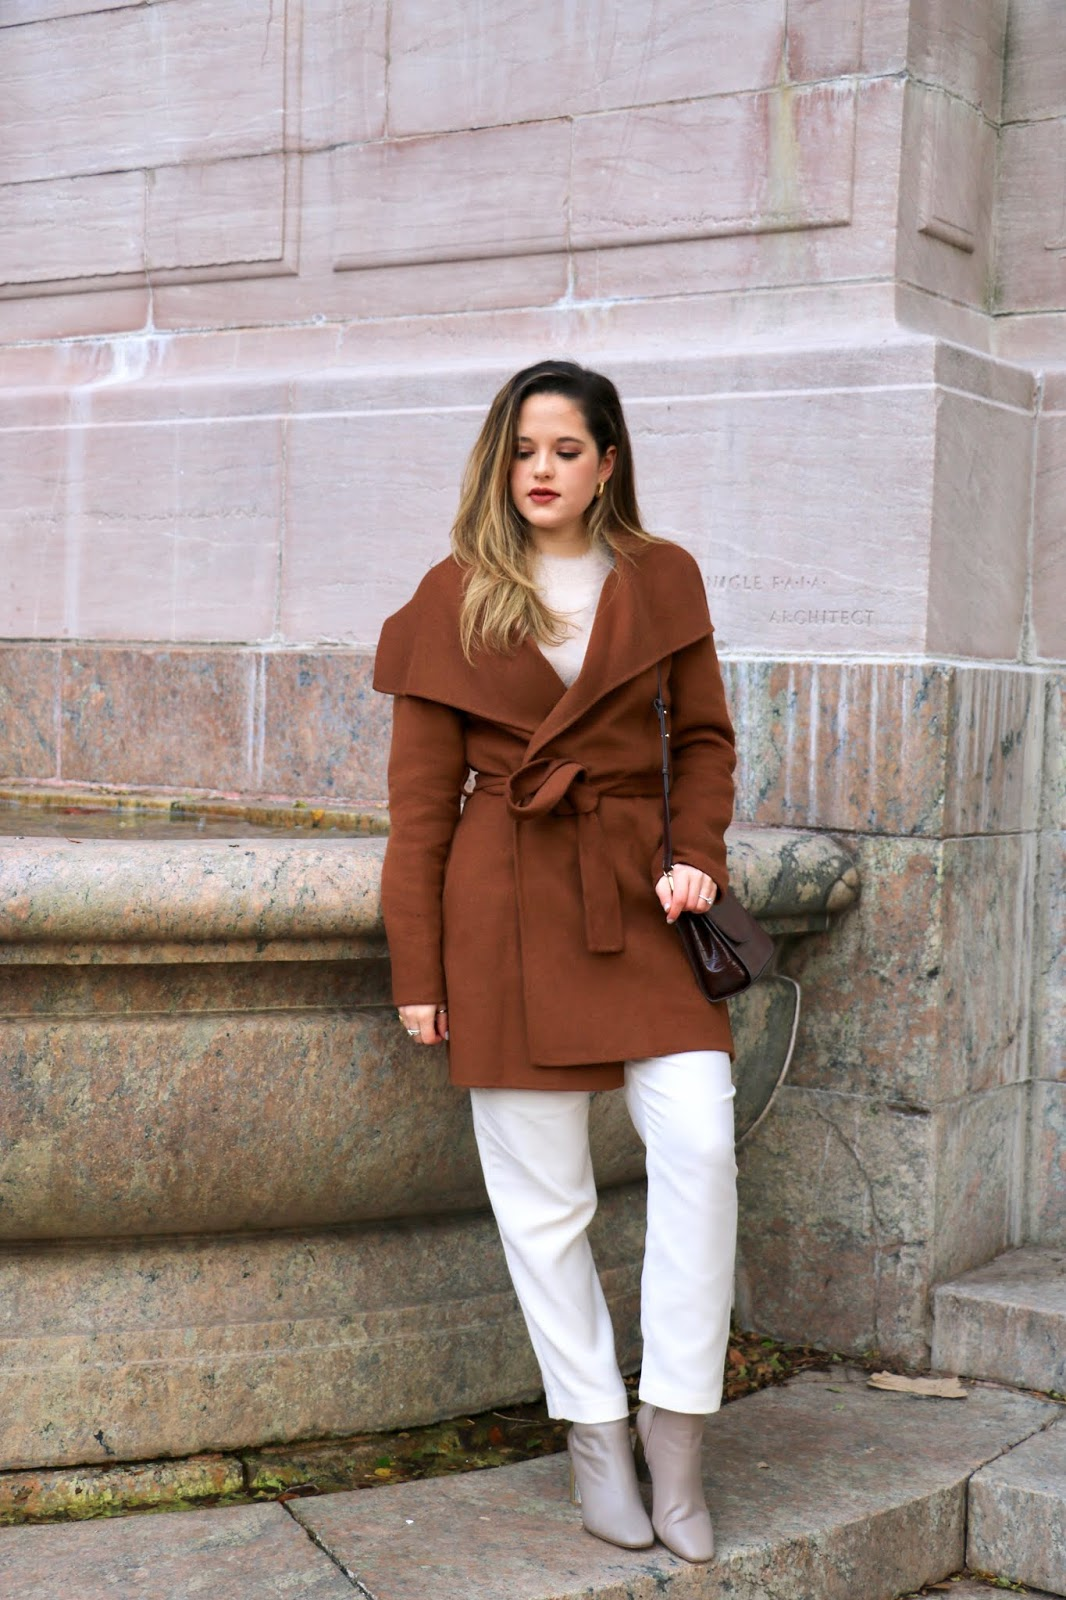 Nyc fashion influencer Kathleen Harper's easy work outfit idea.